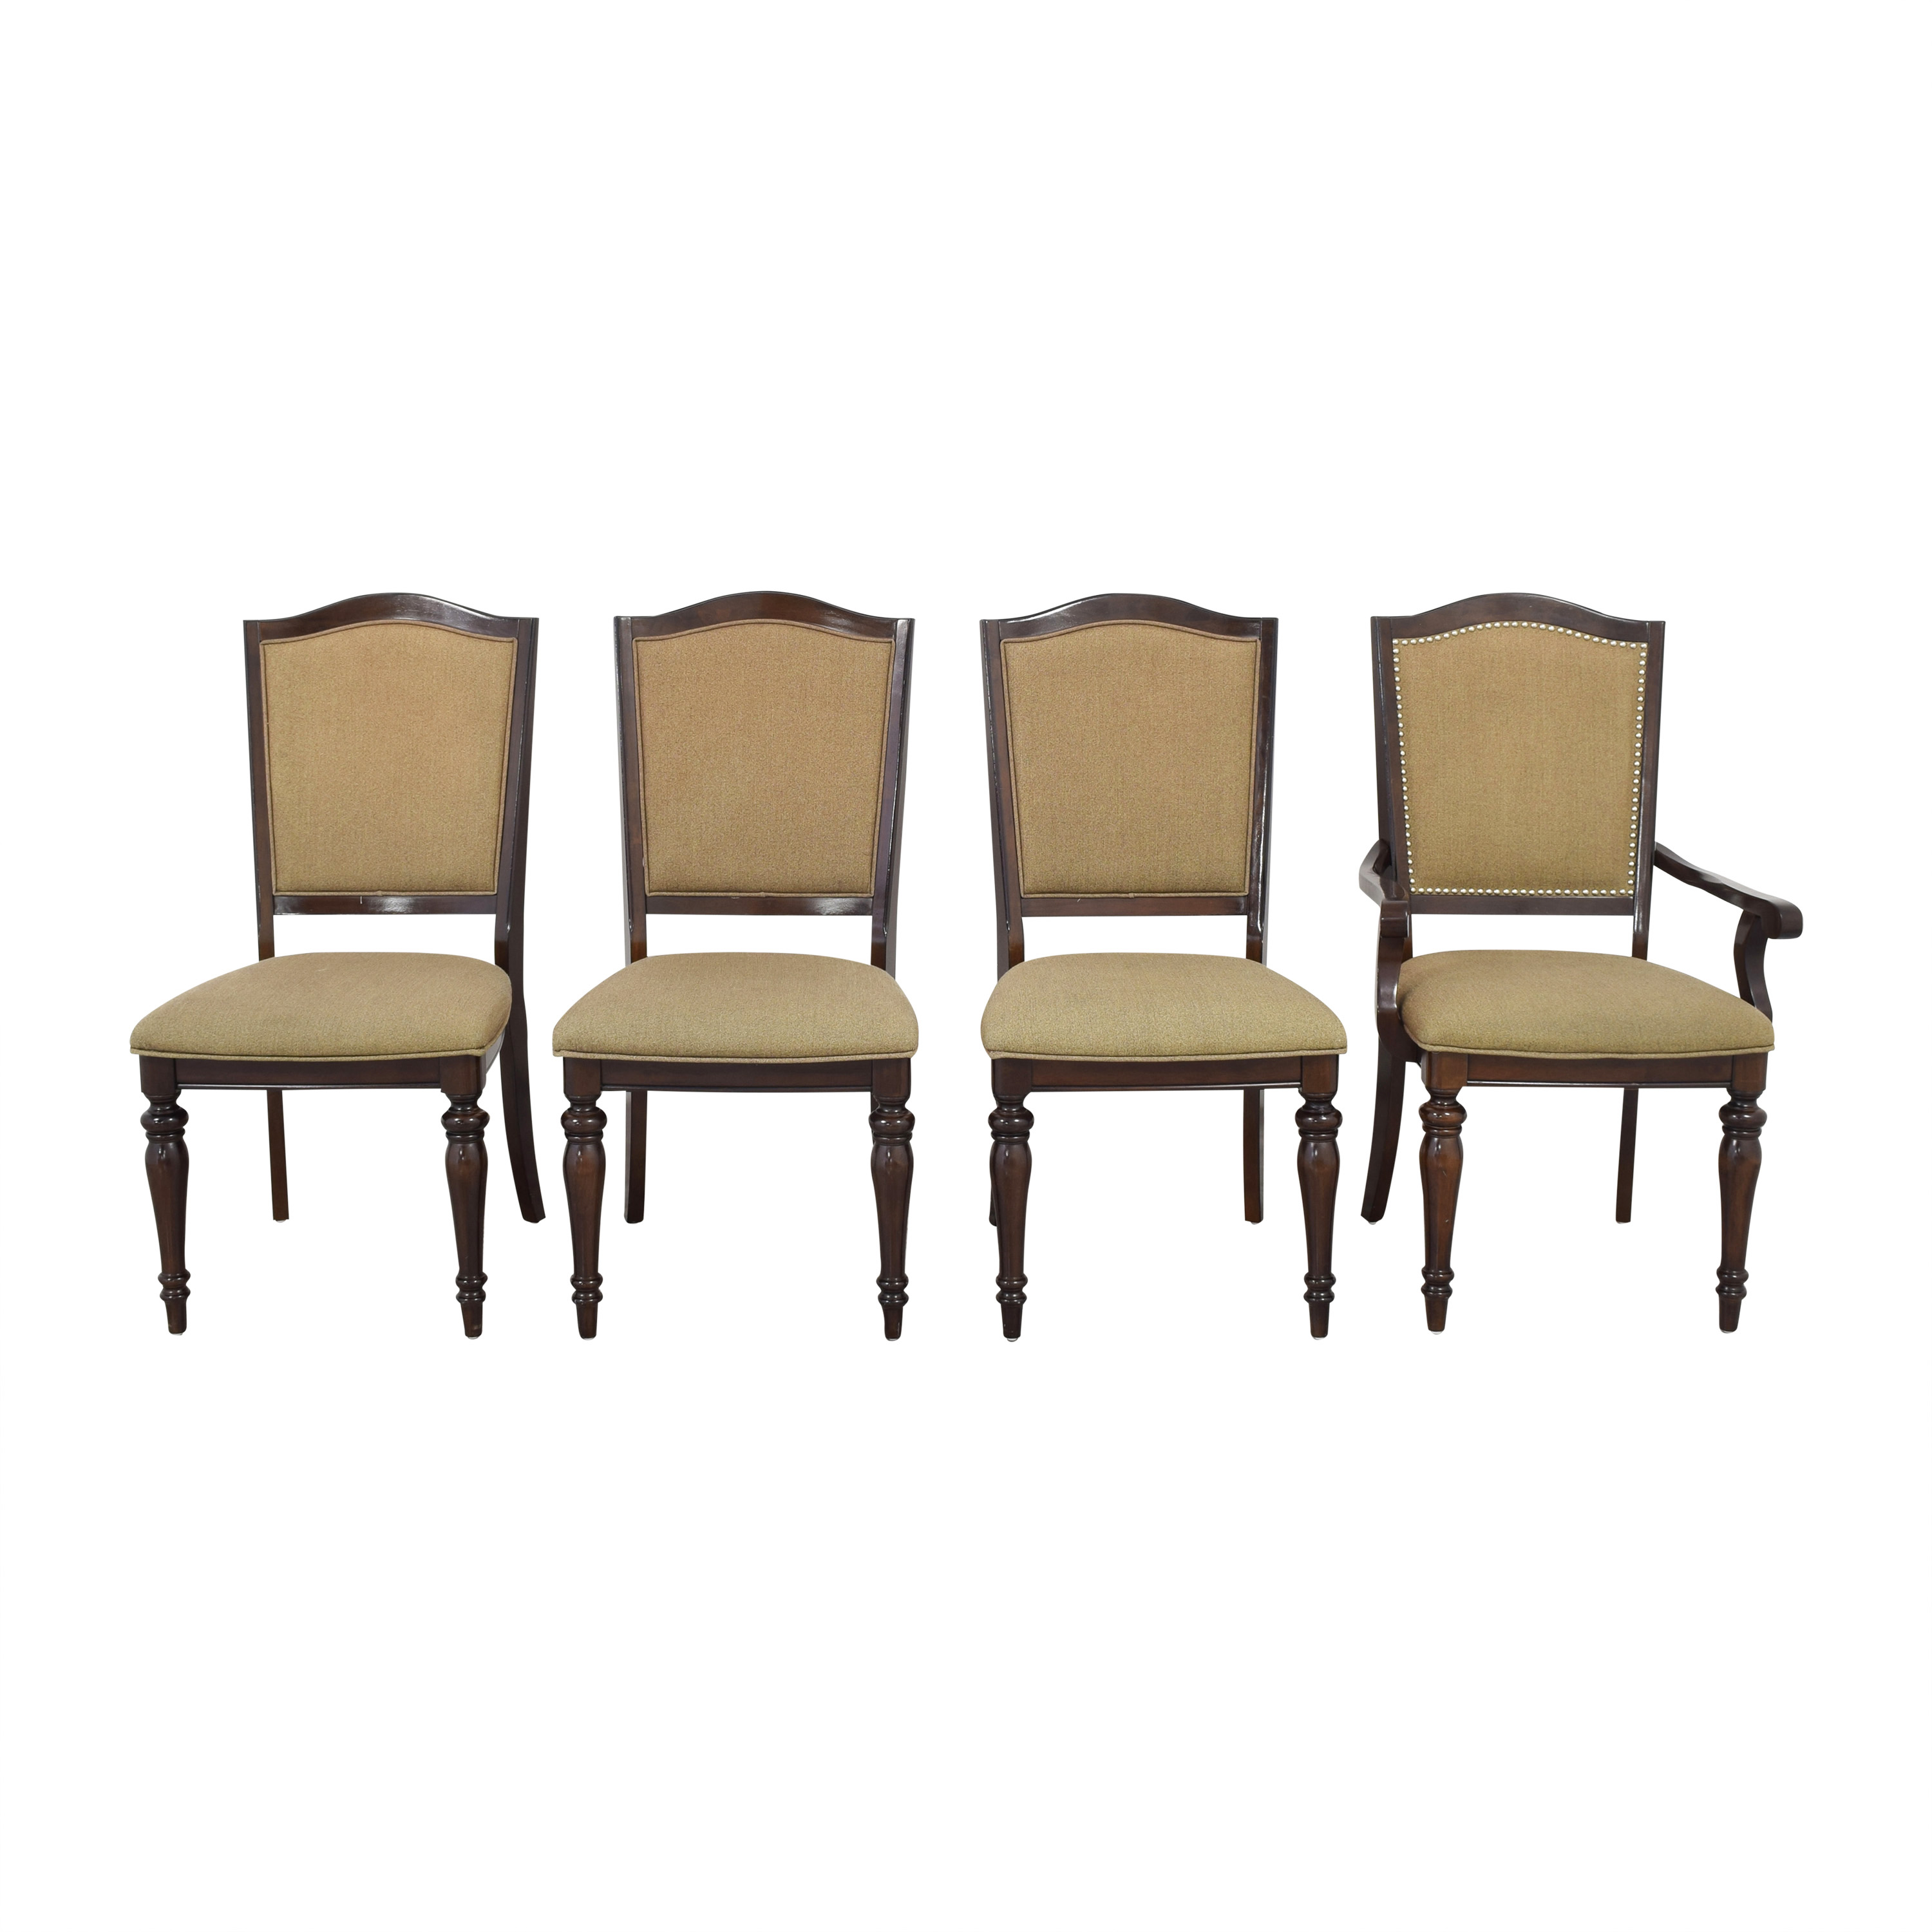 buy Raymour & Flanigan Bay City Studded Dining Chairs Raymour & Flanigan